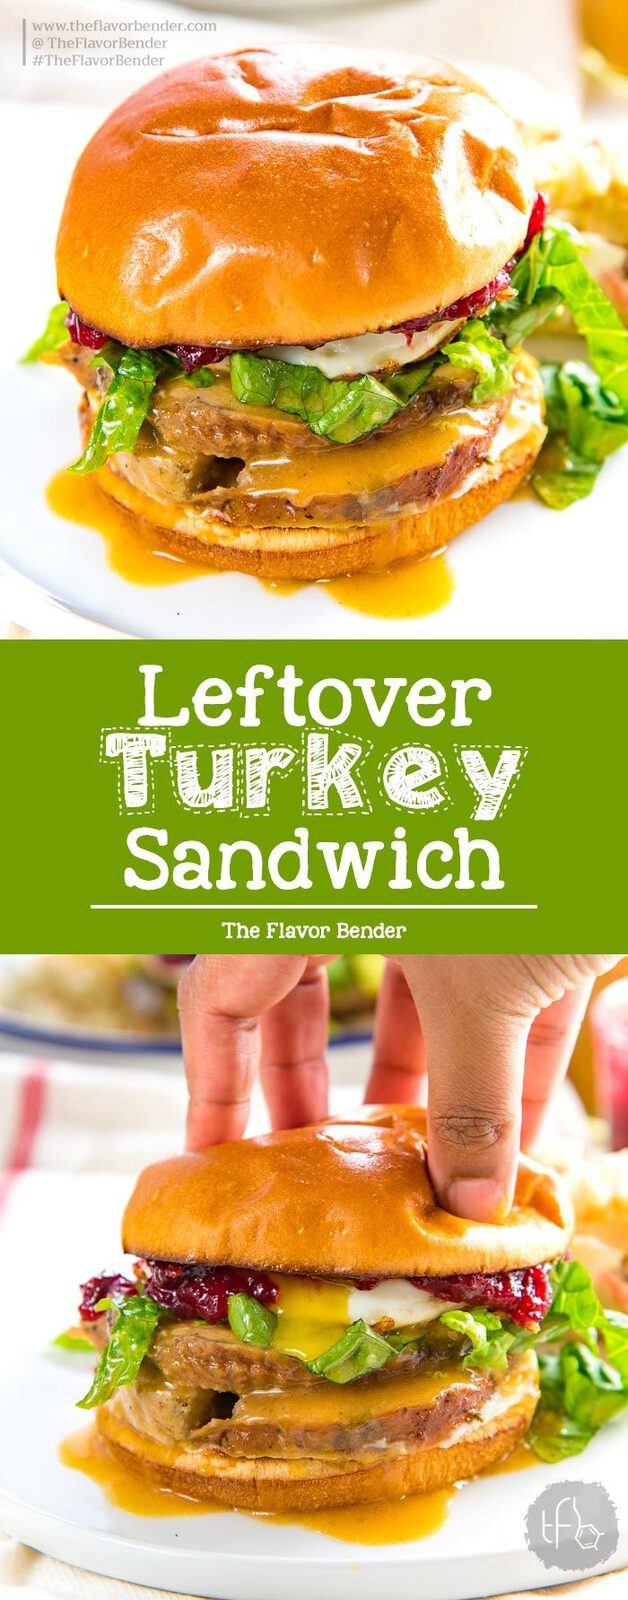 Leftover Turkey Sandwich - the easiest way to transform your Thanksgiving leftovers! This thanksgiving leftovers brunch sandwich is hearty, and delicious. Plus find out how to reheat turkey without drying it out. #ThanksgivingRecipes #ThanksgivingLeftovers #LeftoverTurkey #BrunchRecipes